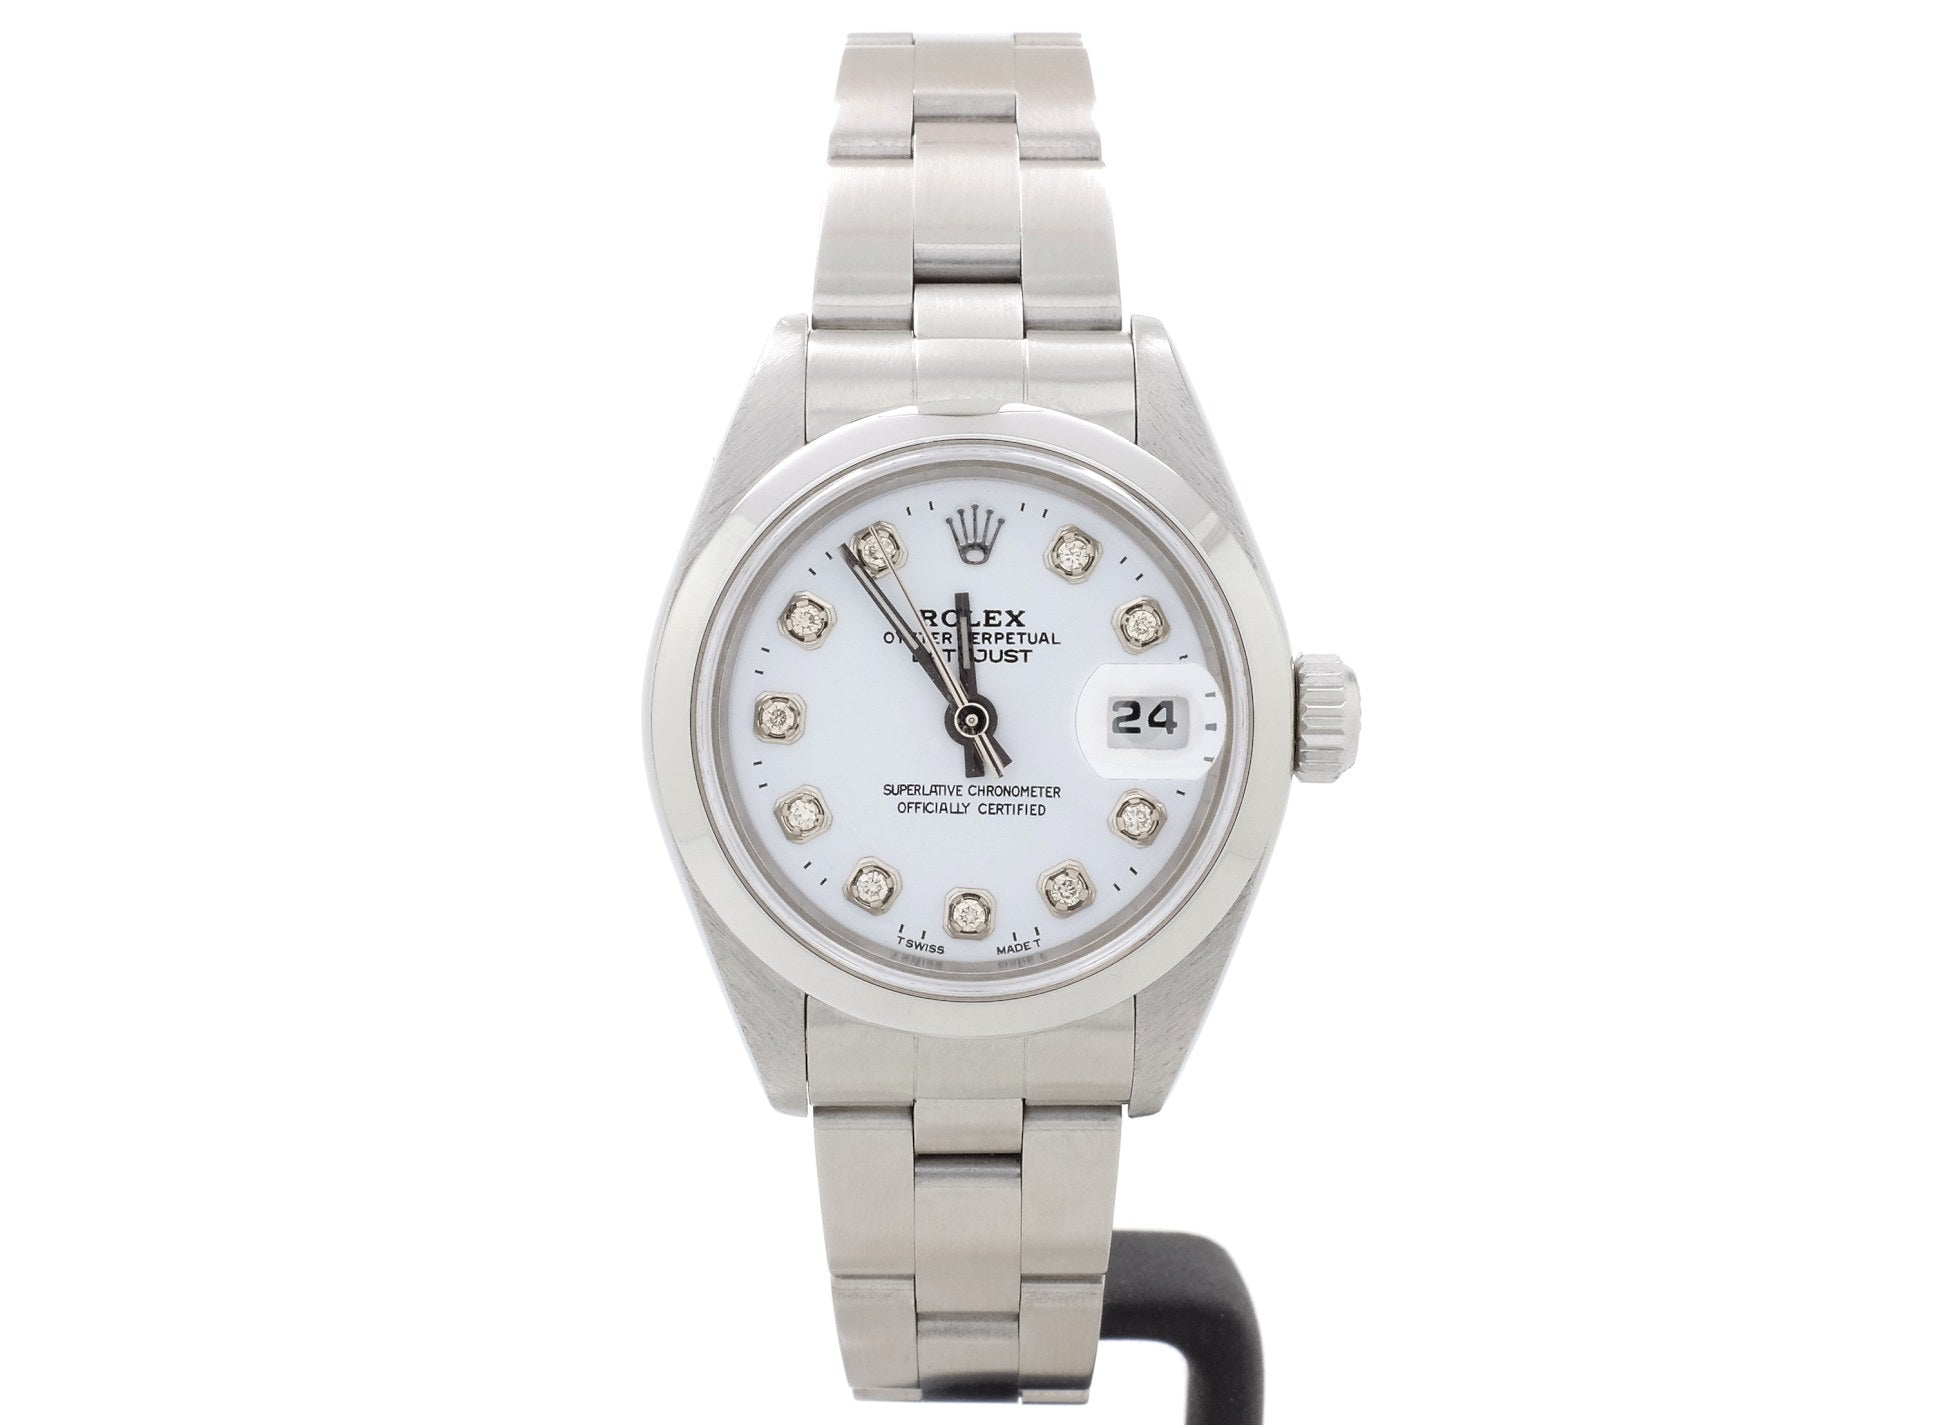 Elegant Rolex LADY-DATE Model 79240 with Custom Diamond-Dot White Dial